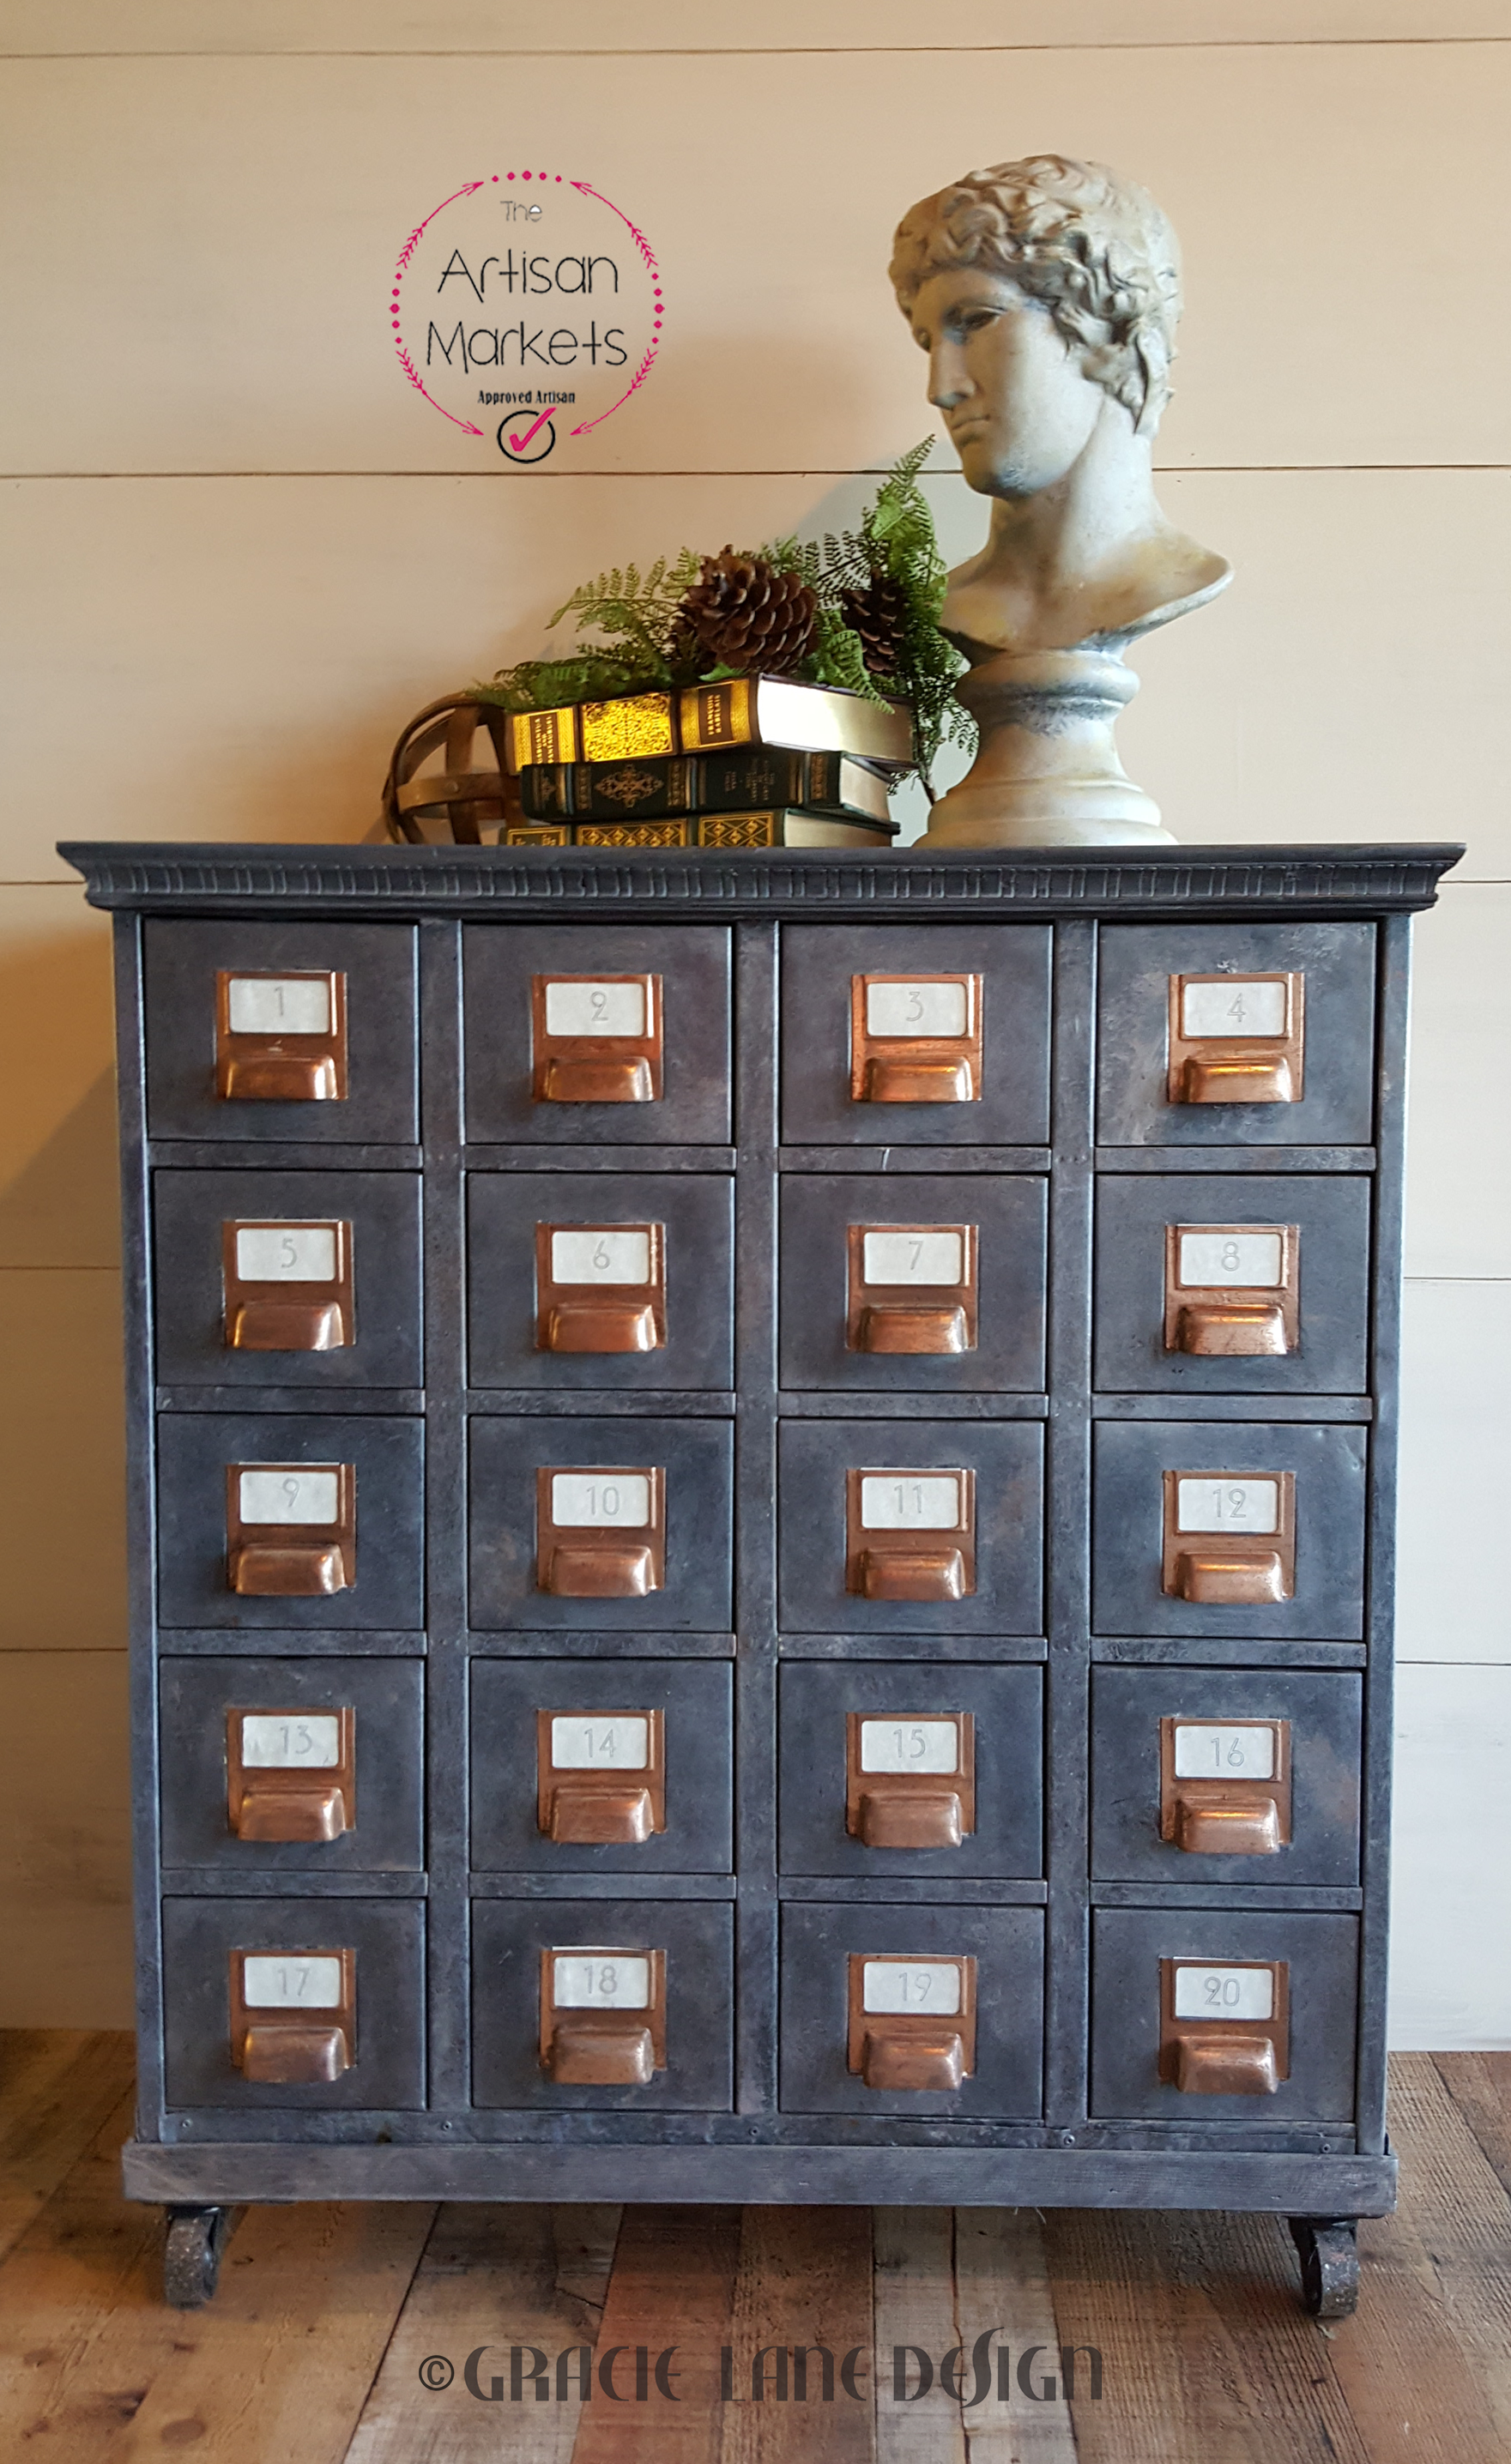 This vintage card catalog gets new life with a zinc finish, copper foil, wooden base and top and industrial casters.